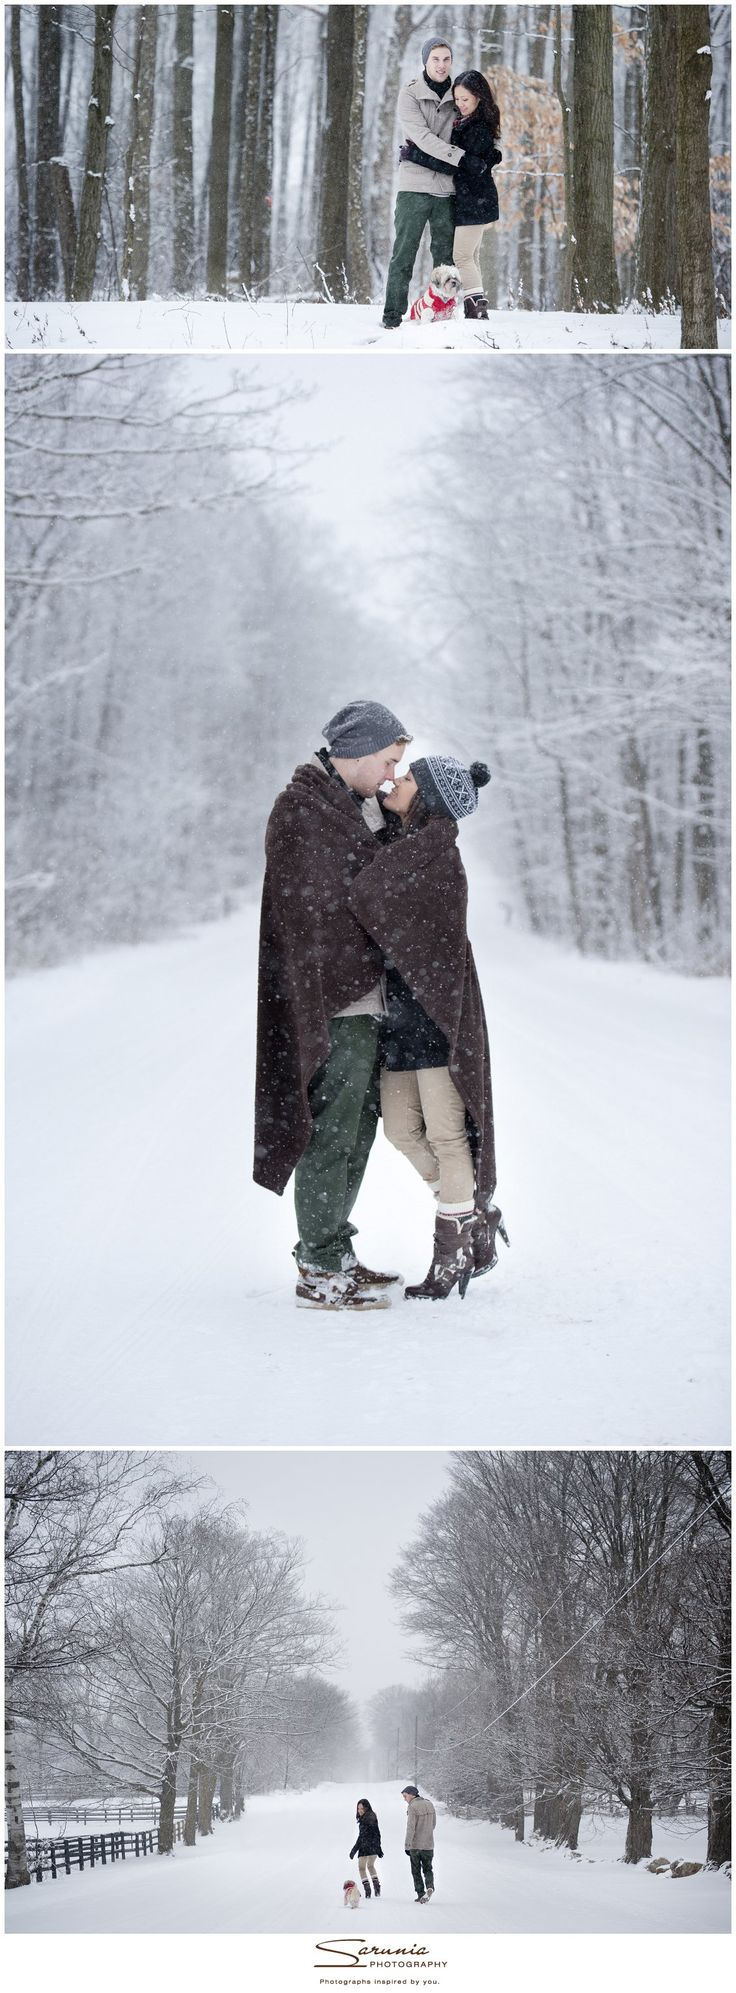 romantic winter wonderland engagement shoot! - Sarunia Photography http://plombiers-paris-75.com/plombier-thiais-94230.html